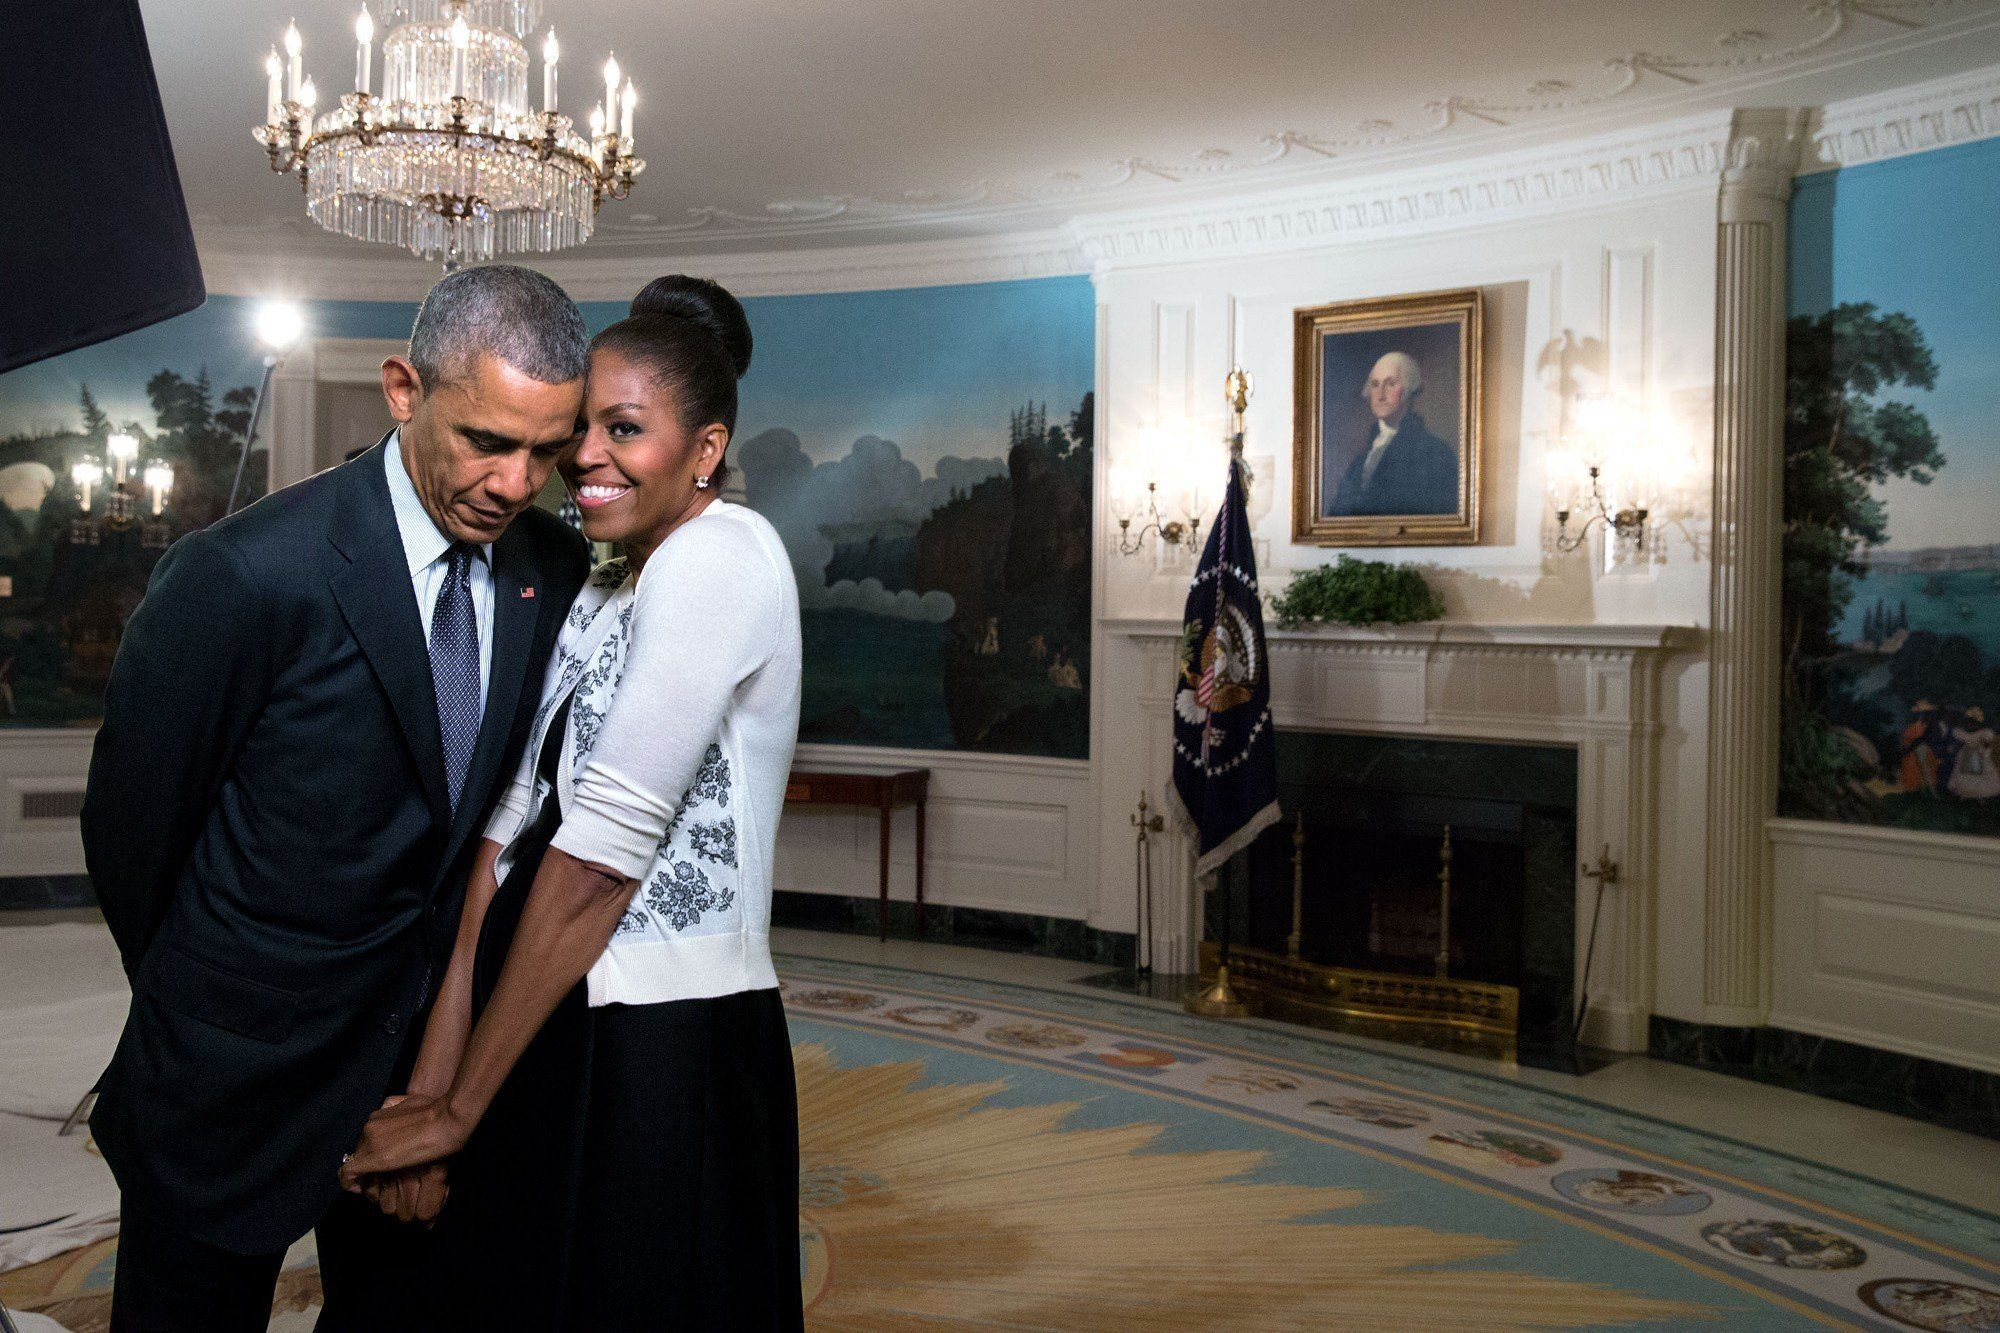 The first lady snuggles against the president during a video taping for the 2015 World Expo in the Diplomatic Reception